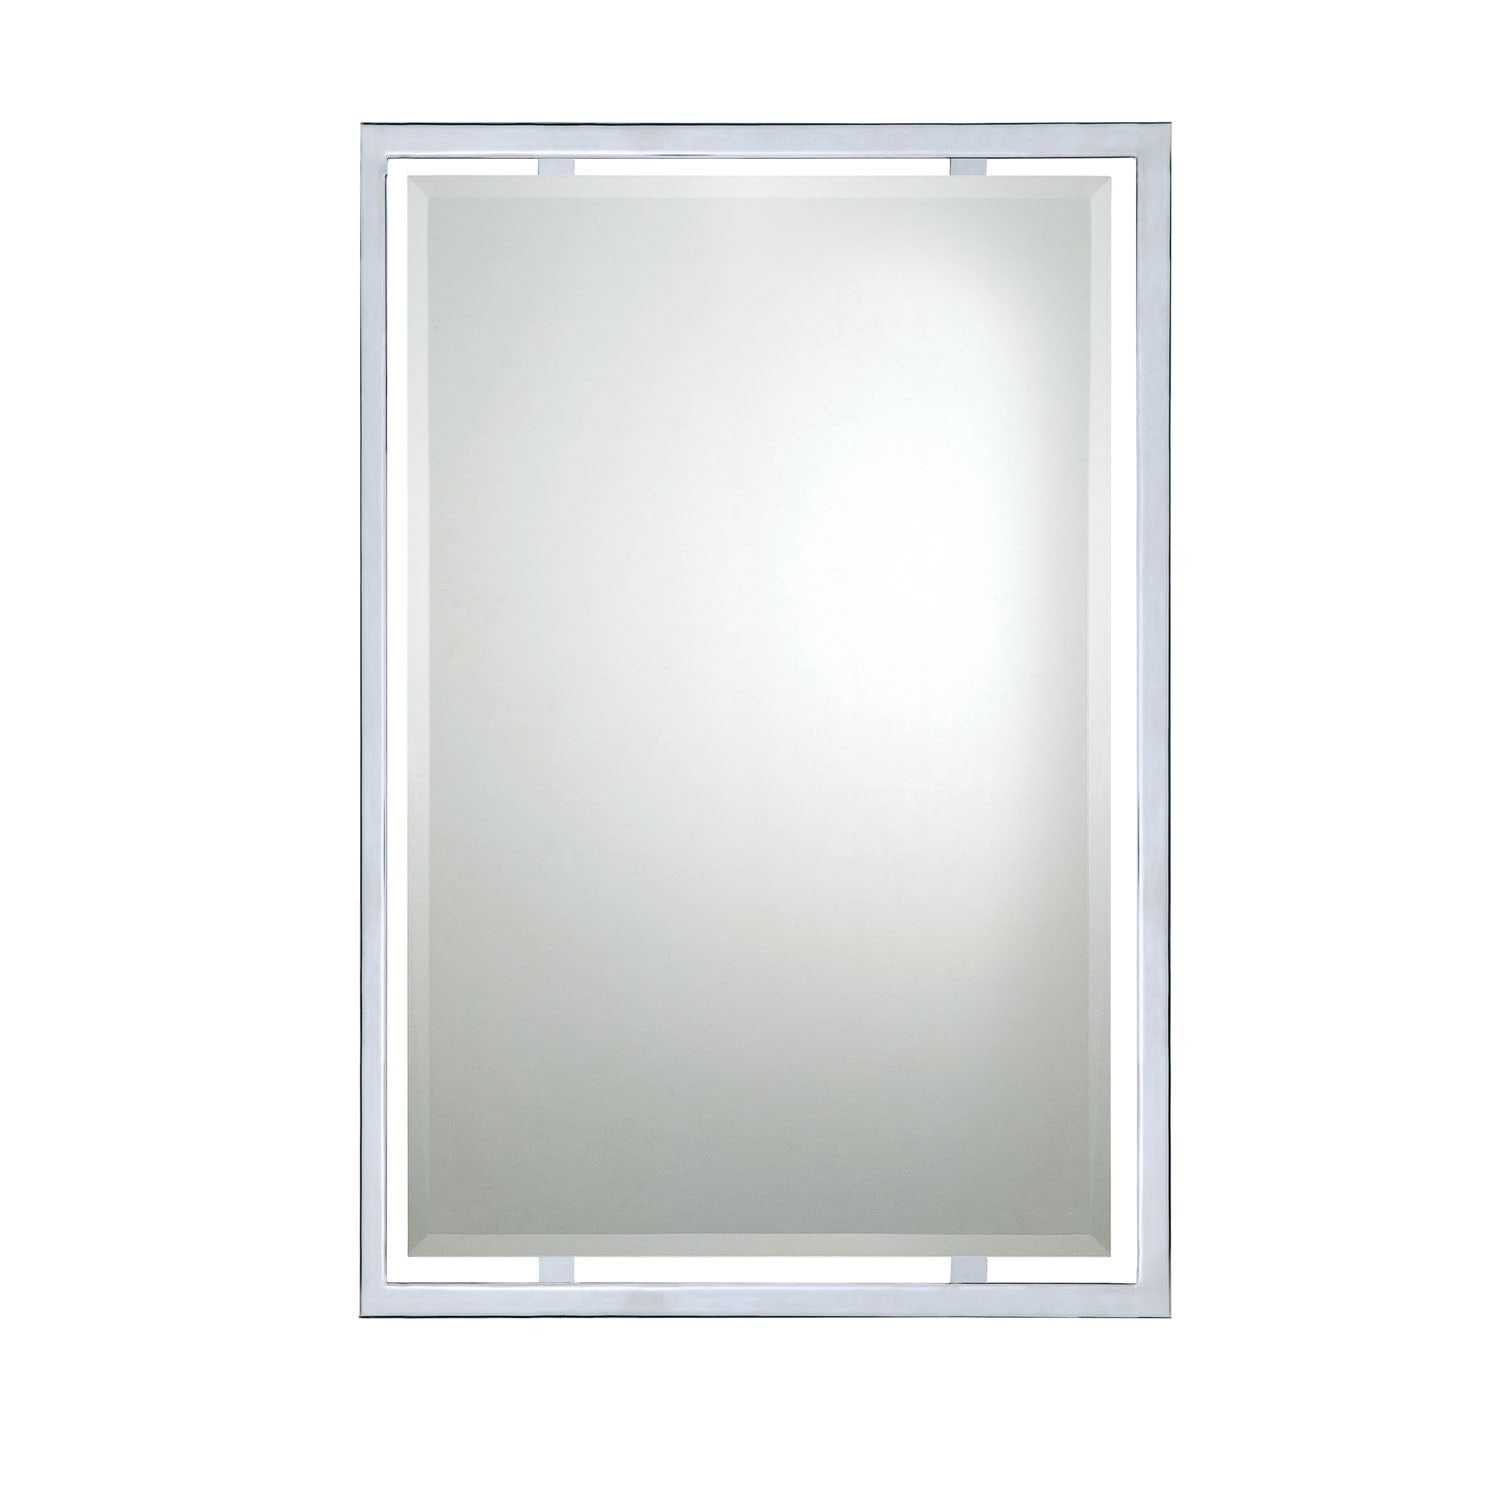 Quoizel Polished Chrome Wall Mirror